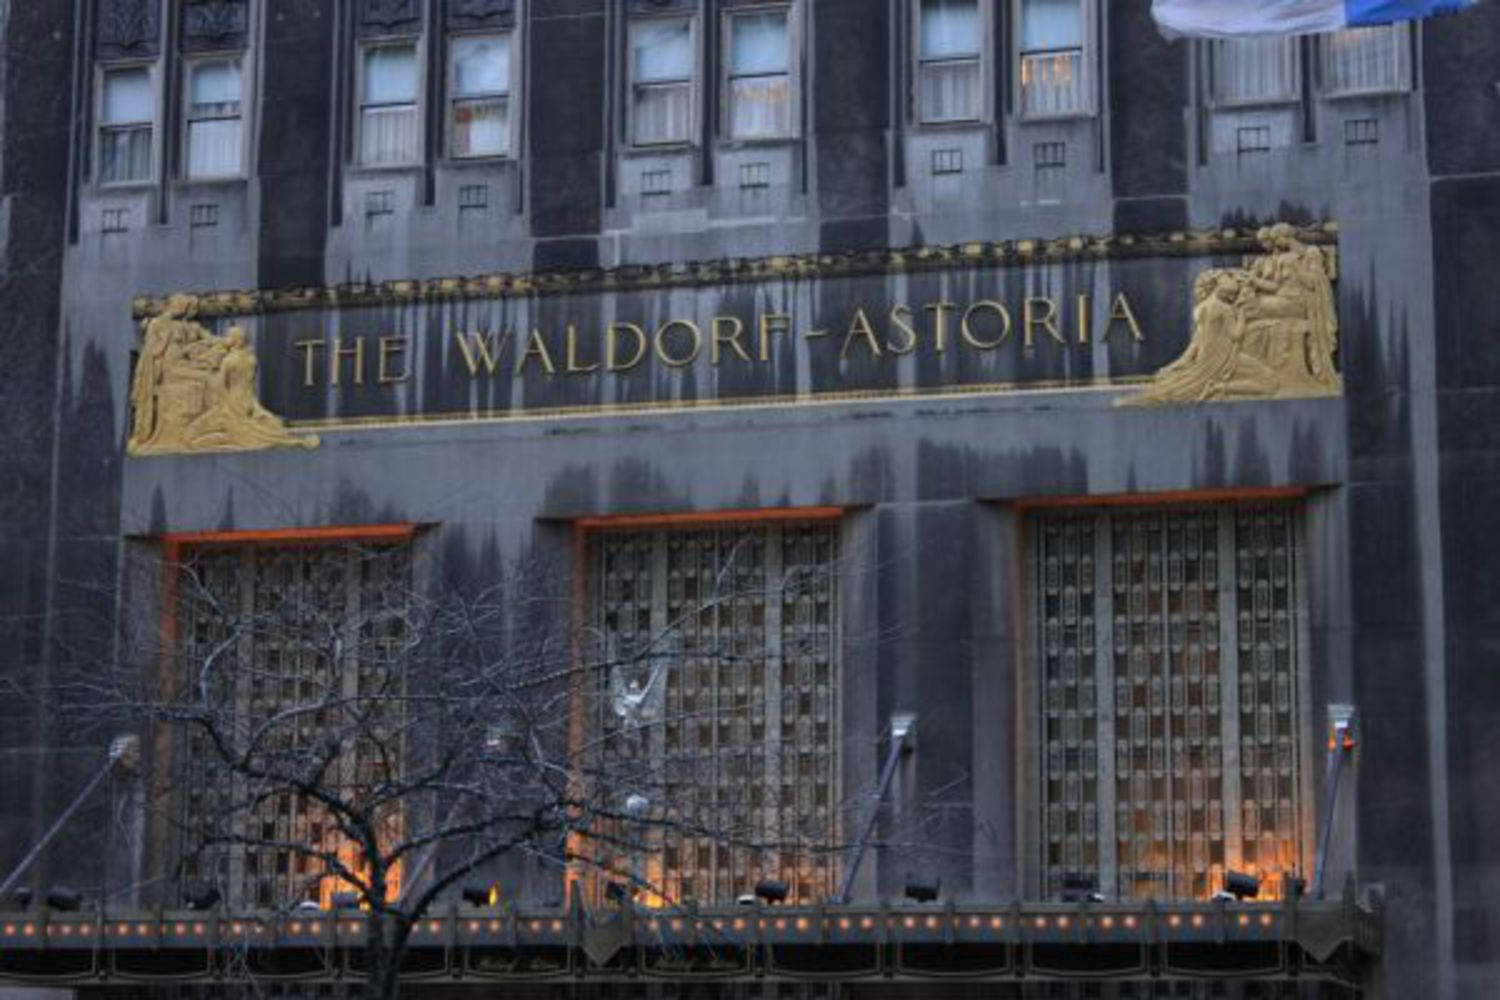 "Waldorf-Astoria Hotel: Built between 1929 and 1931, this is the second hotel to bear the Waldorf Astoria name. The first was razed to make room for the Empire State Building. The second Waldorf Astoria was designed in Art Deco style with a twin-towered skyscraper. Presidents and kings have all lived at the Waldorf Astoria in the decades since it was completed. The New York Times called it ""New York's Unofficial Palace."""